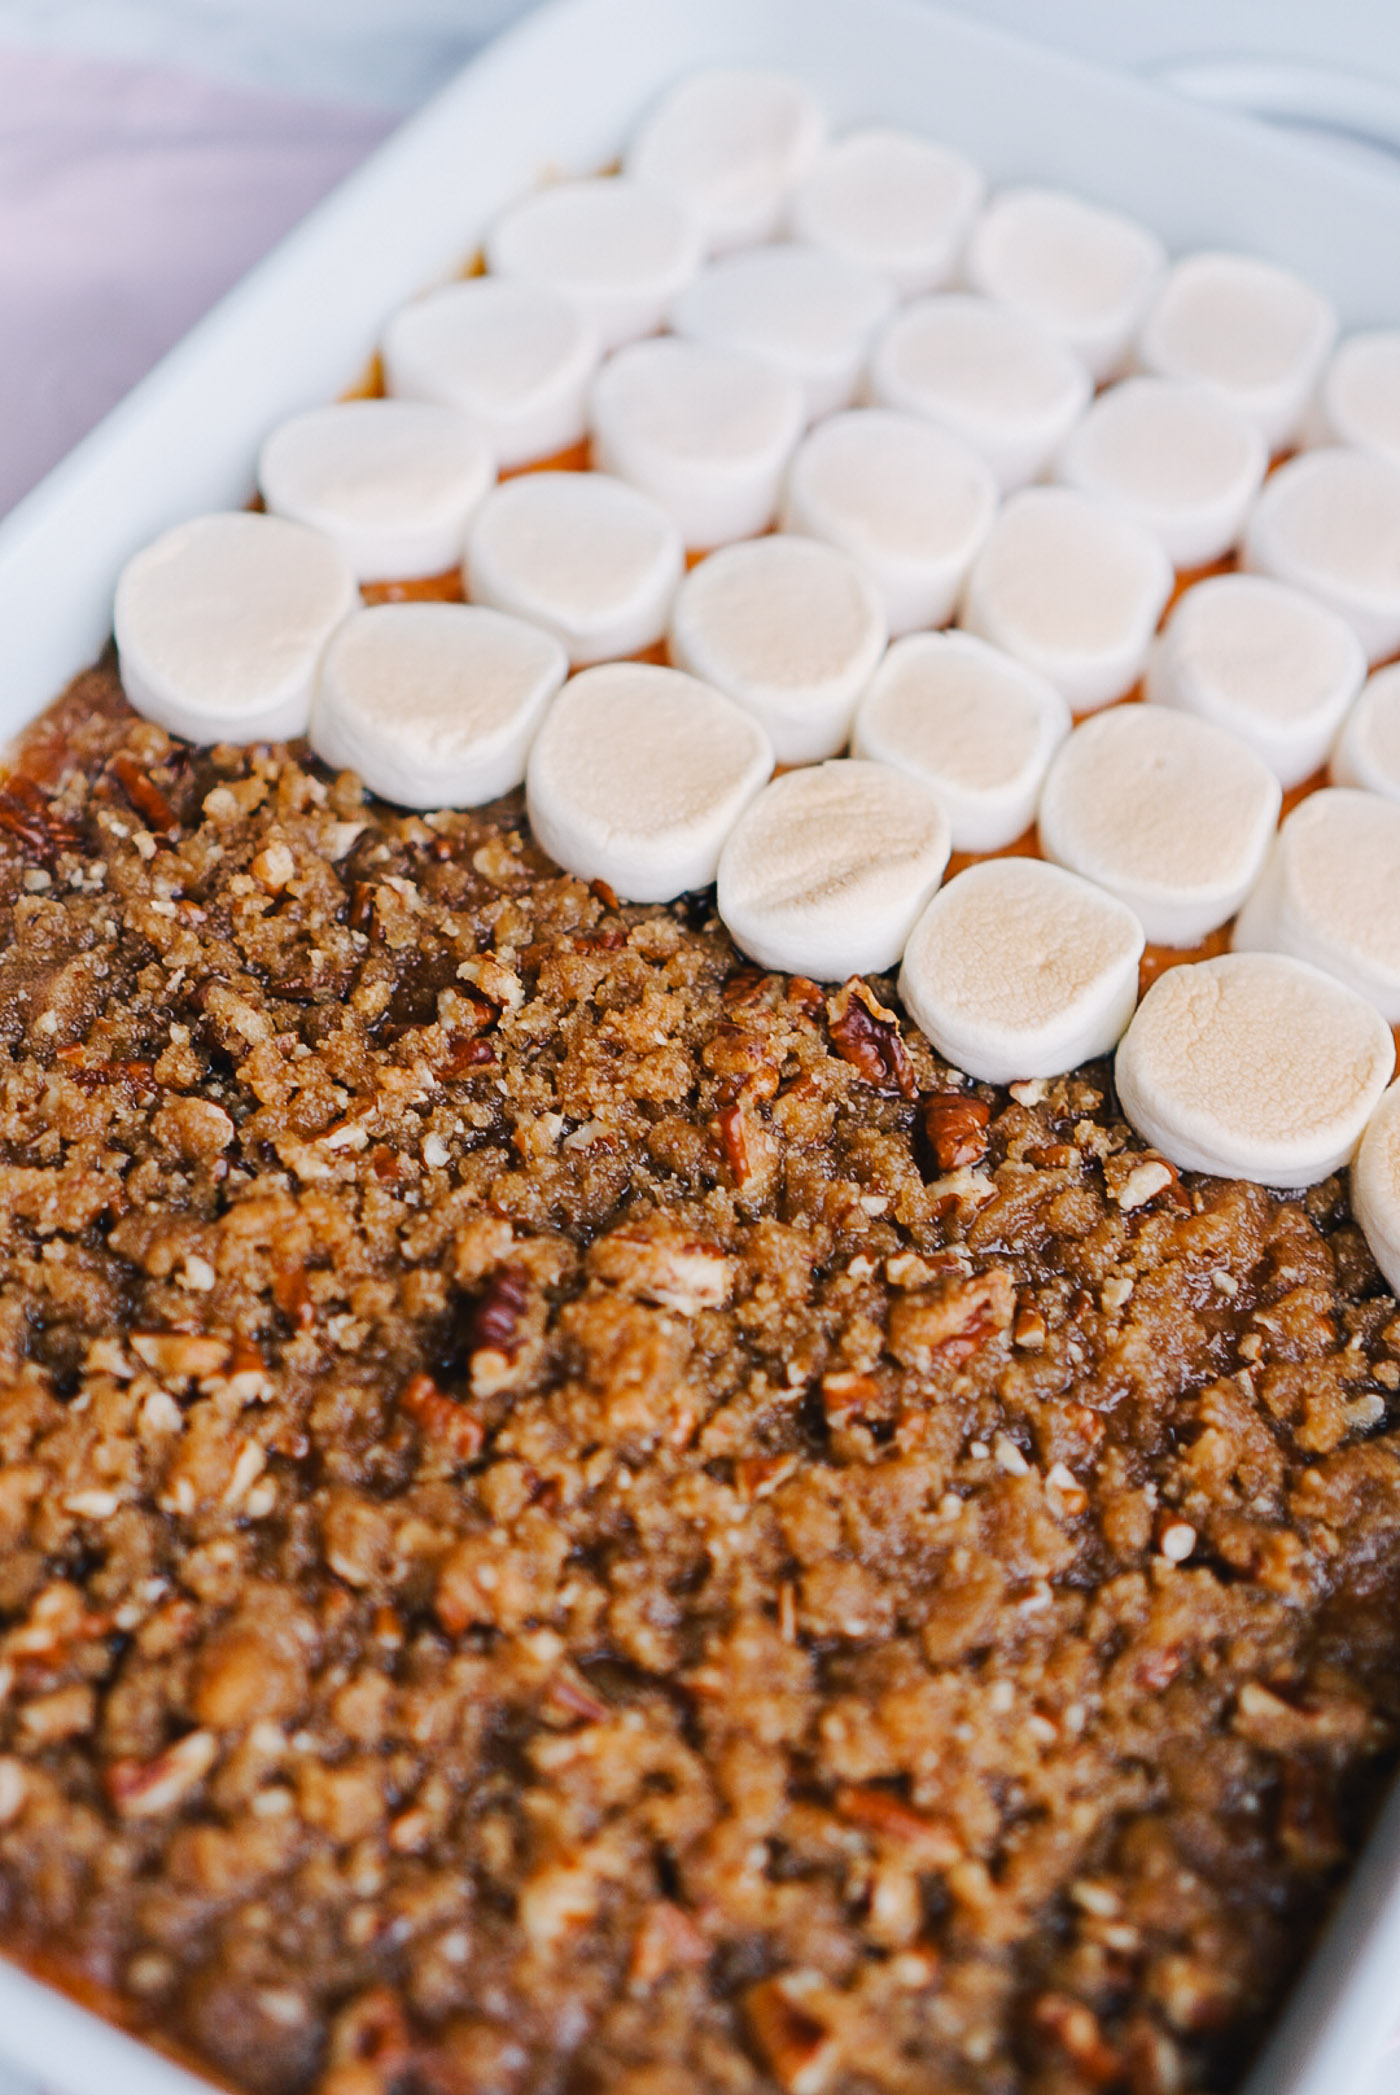 A creative twist on sweet potato casserole for marshmallow and crumble topping lovers alike by Lauren Cermak of the Southern lifestyle blog, Going For Grace.